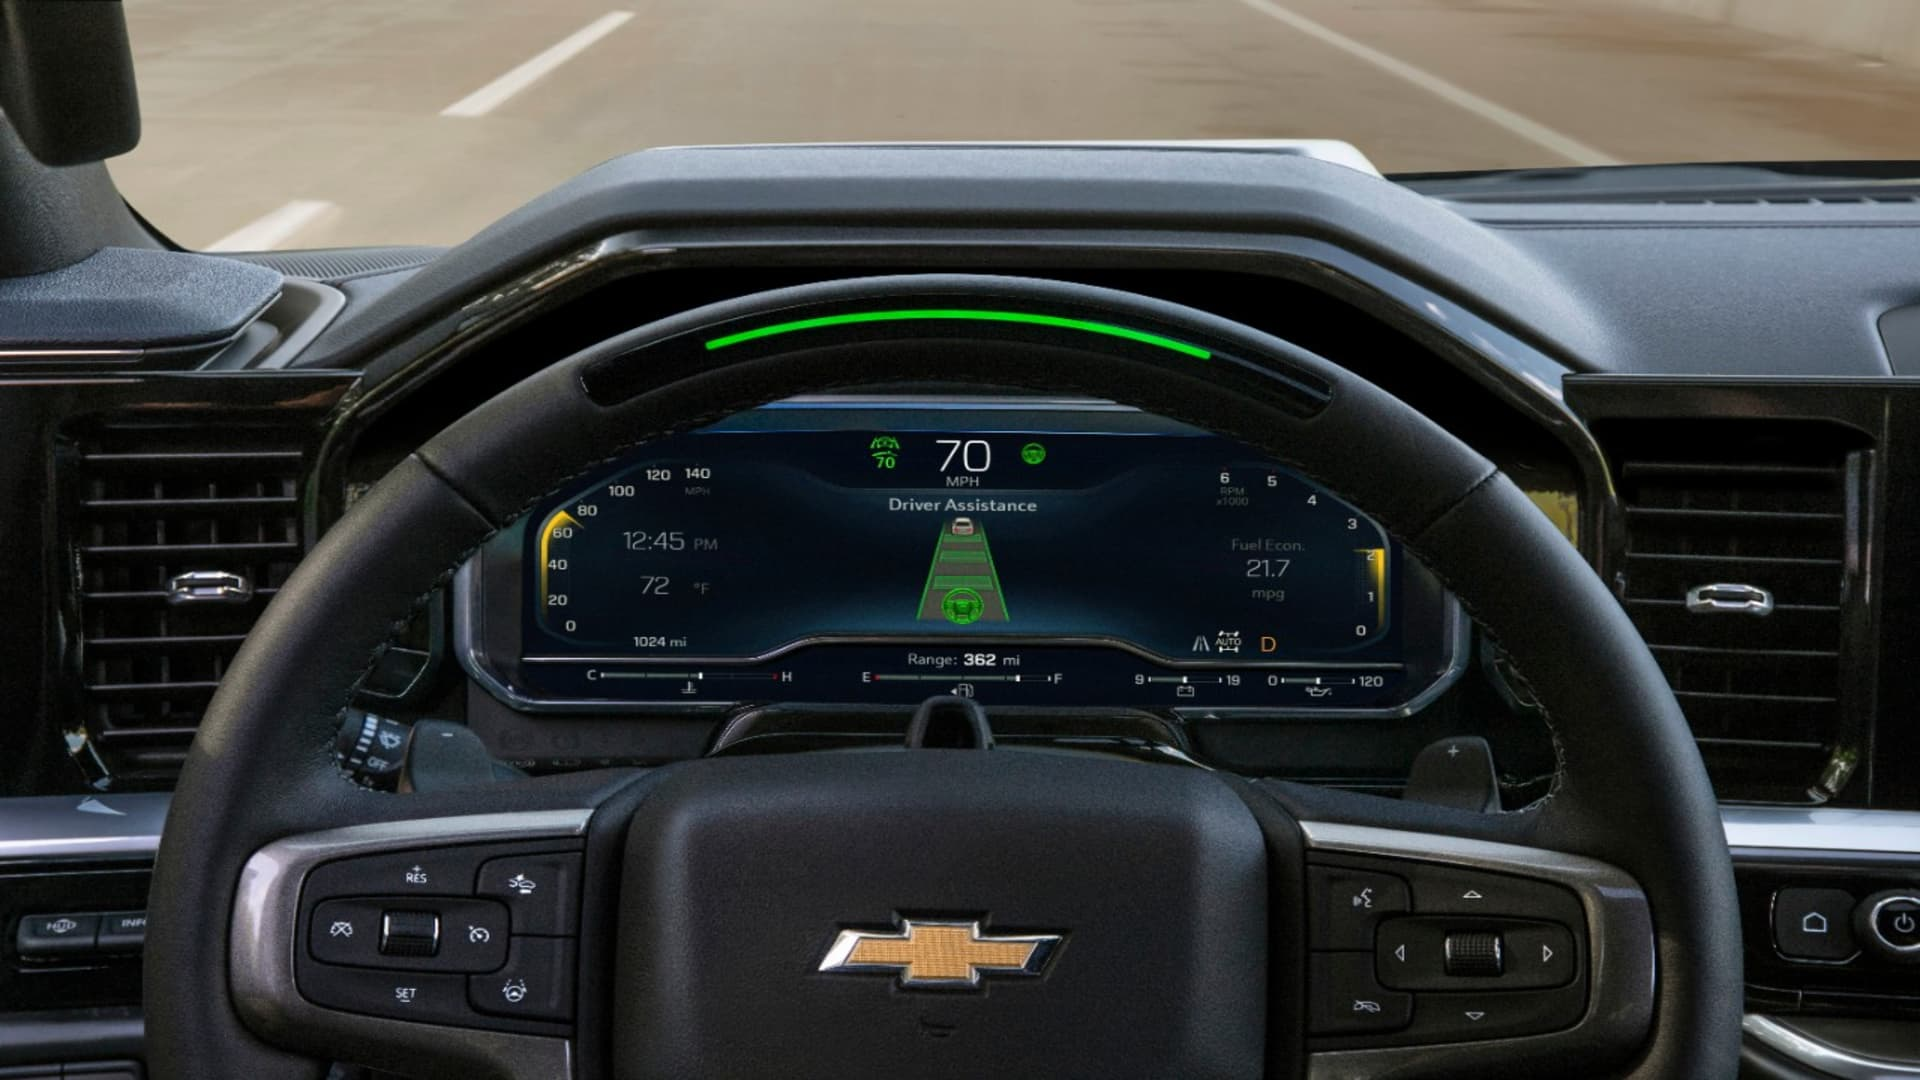 The 2022 Chevrolet Silverado High Country will offer GM's Super Cruise hands-free highway driving system.